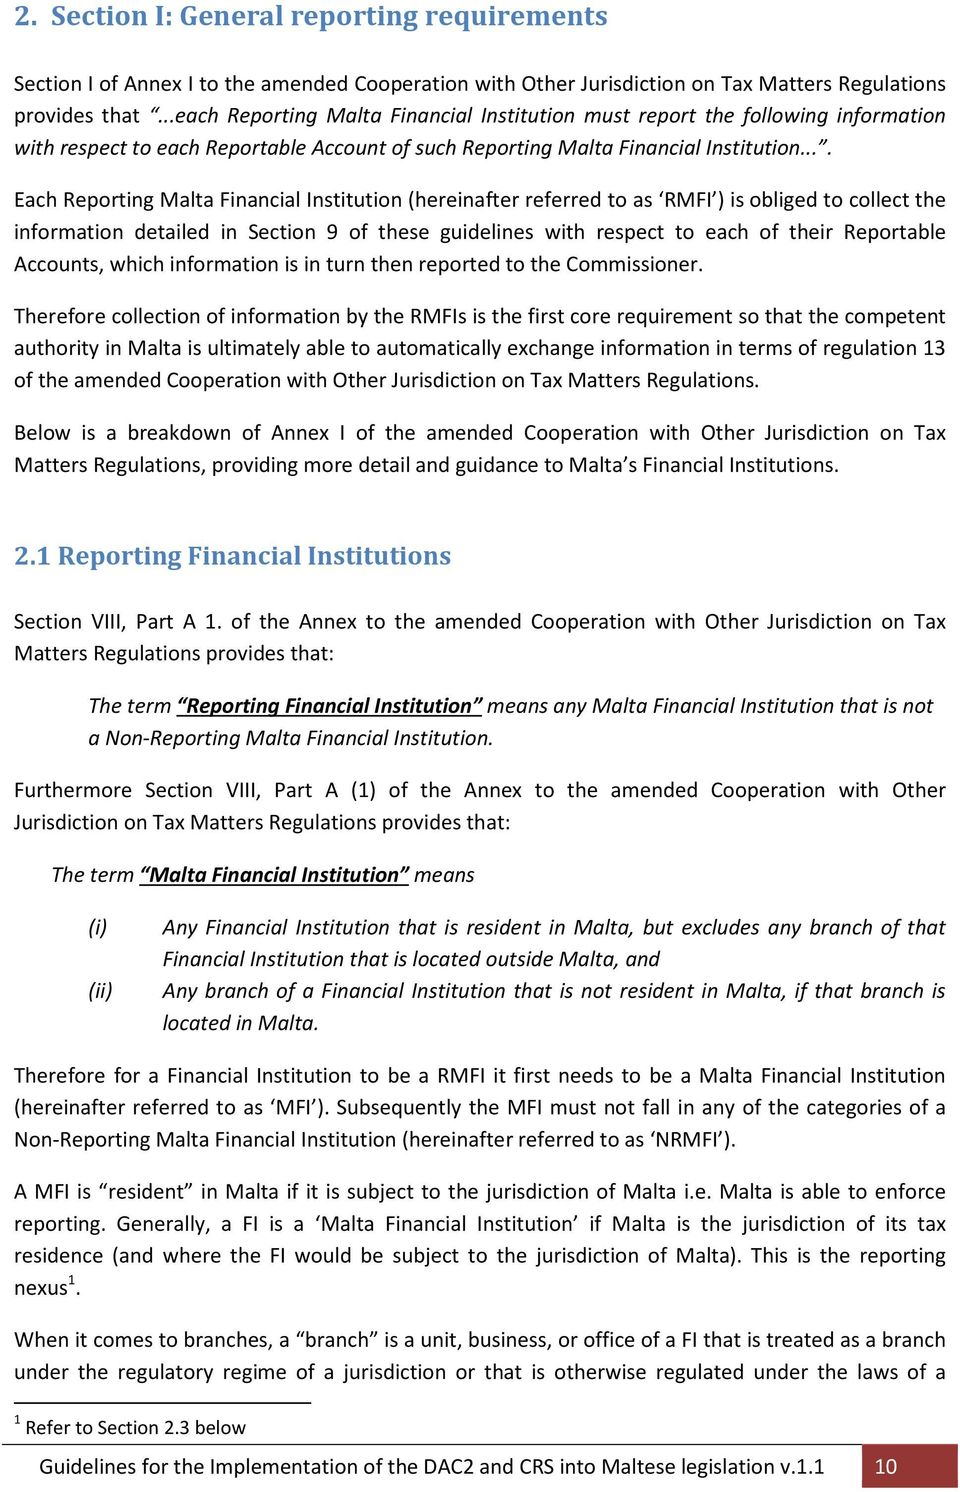 ... Each Reporting Malta Financial Institution (hereinafter referred to as RMFI ) is obliged to collect the information detailed in Section 9 of these guidelines with respect to each of their